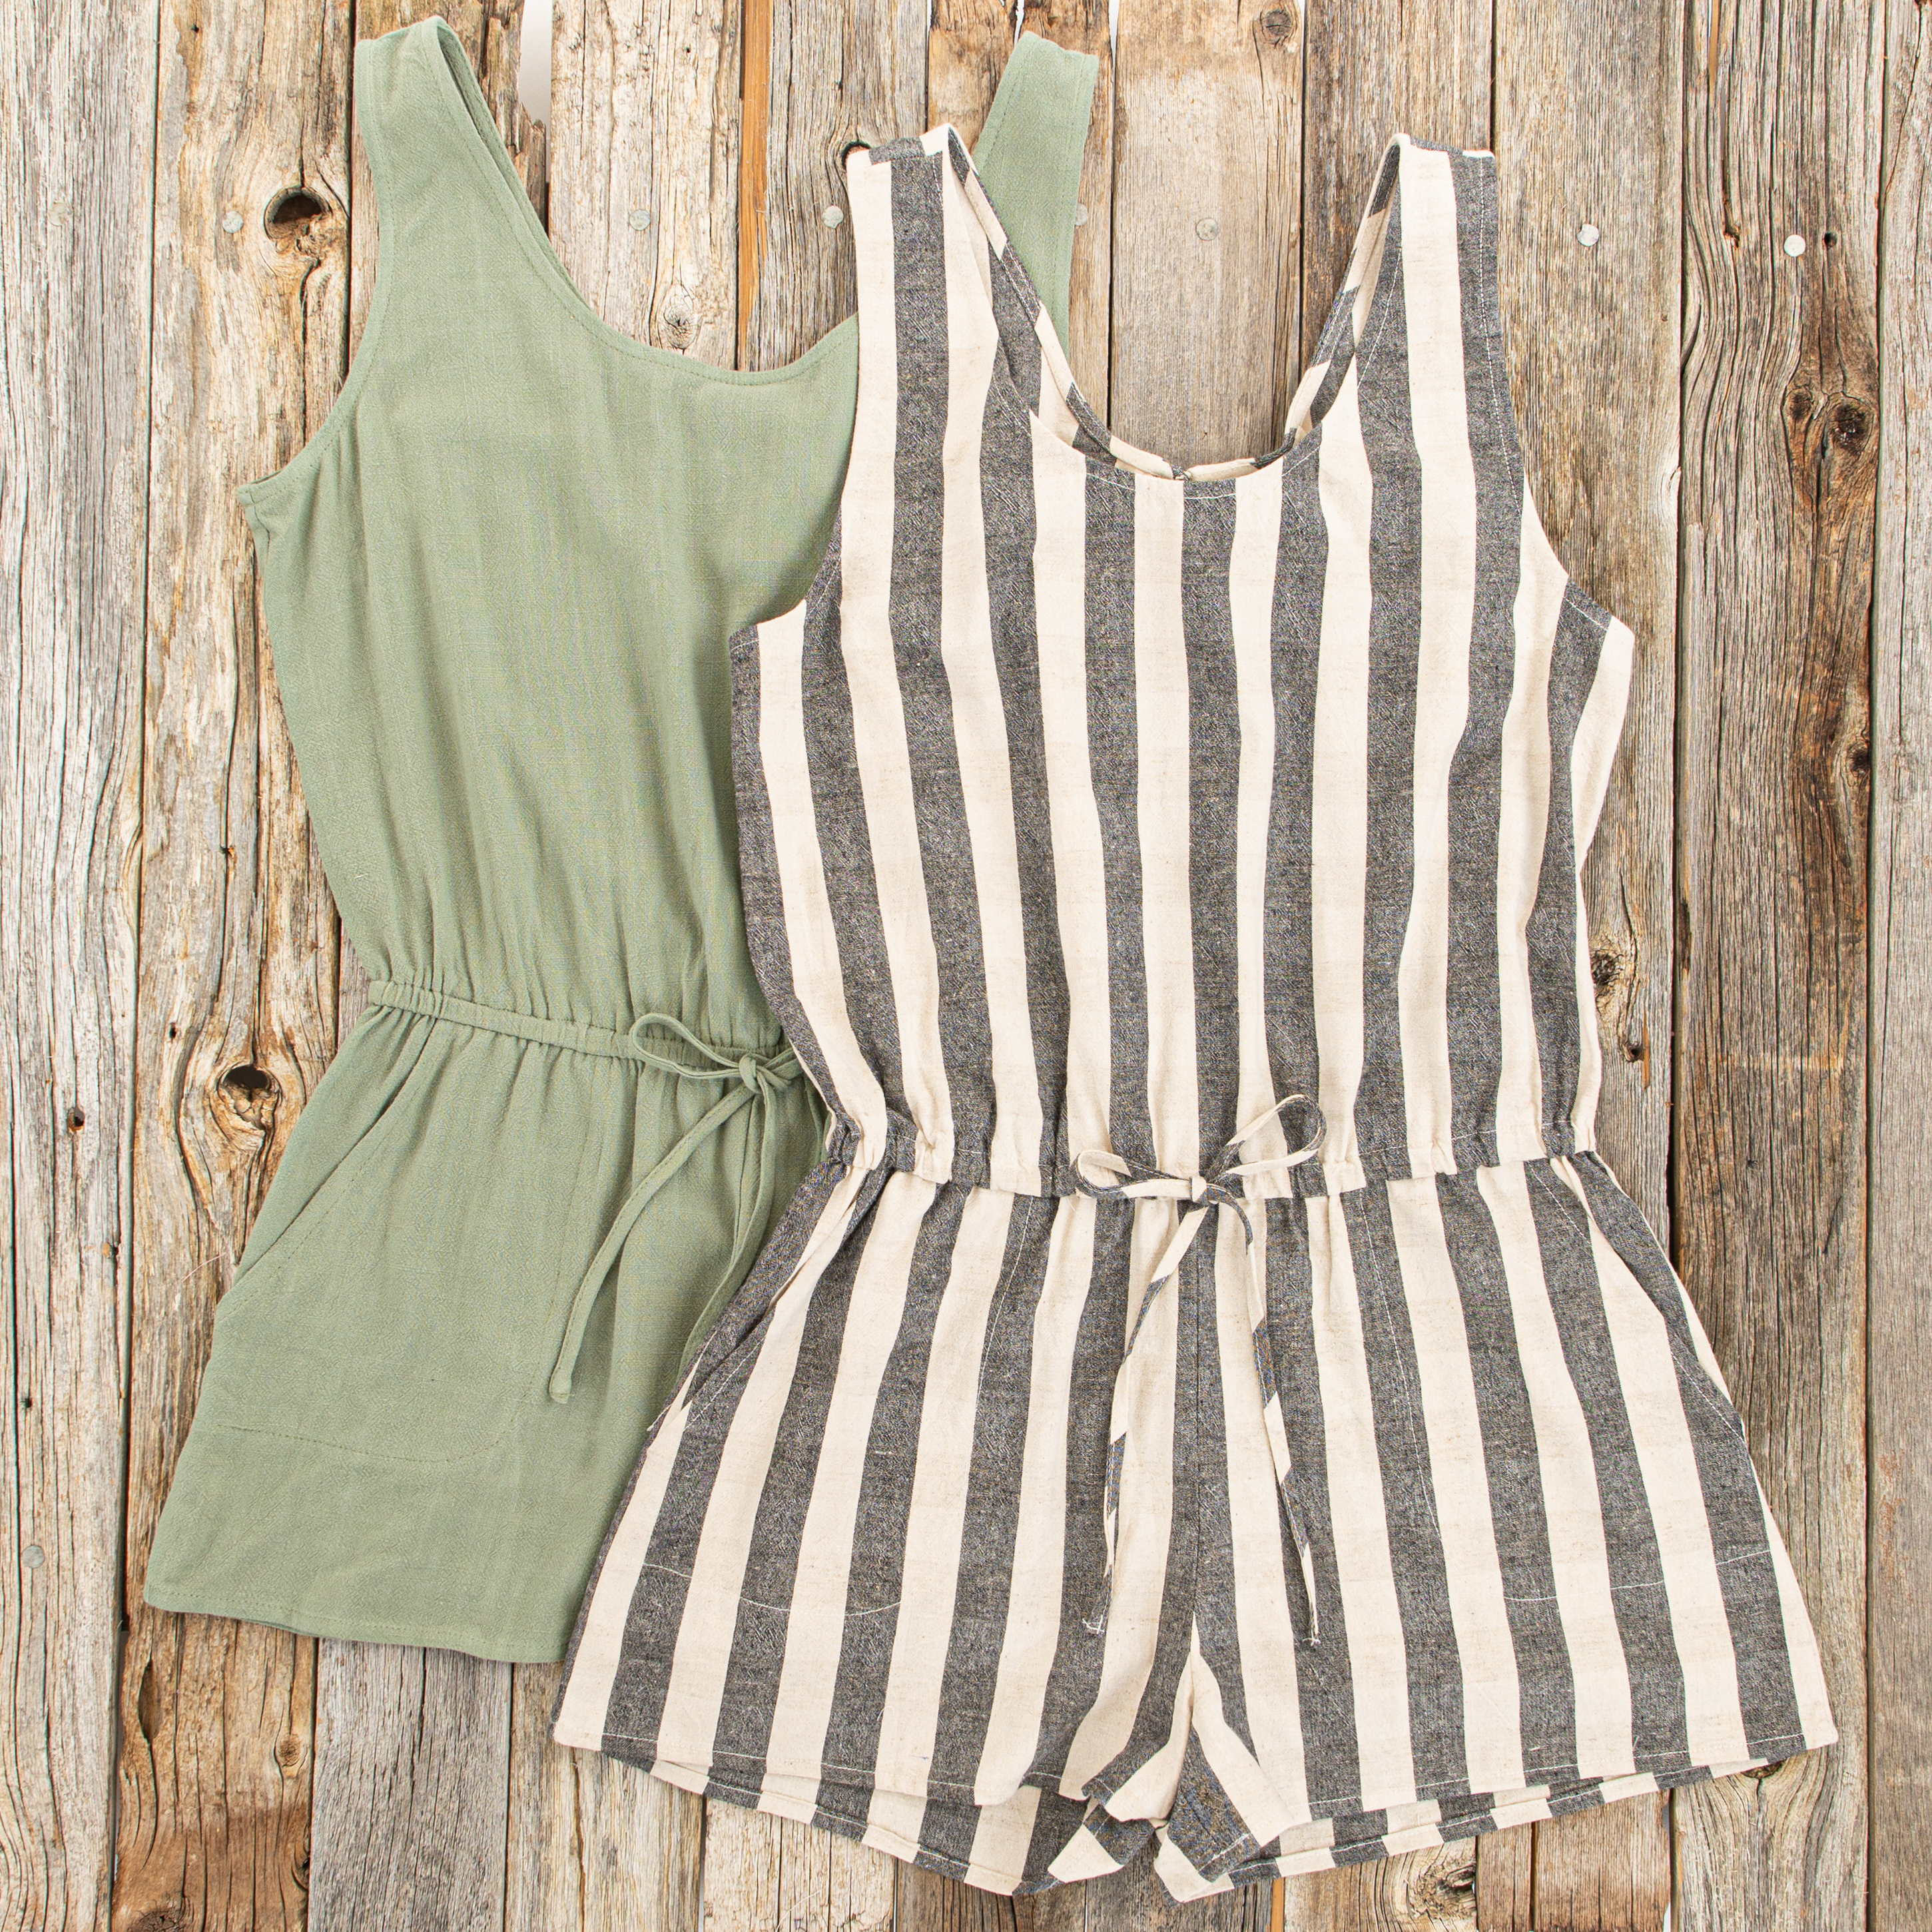 Charcoal and Oatmeal Striped Sleeveless Romper with Pockets